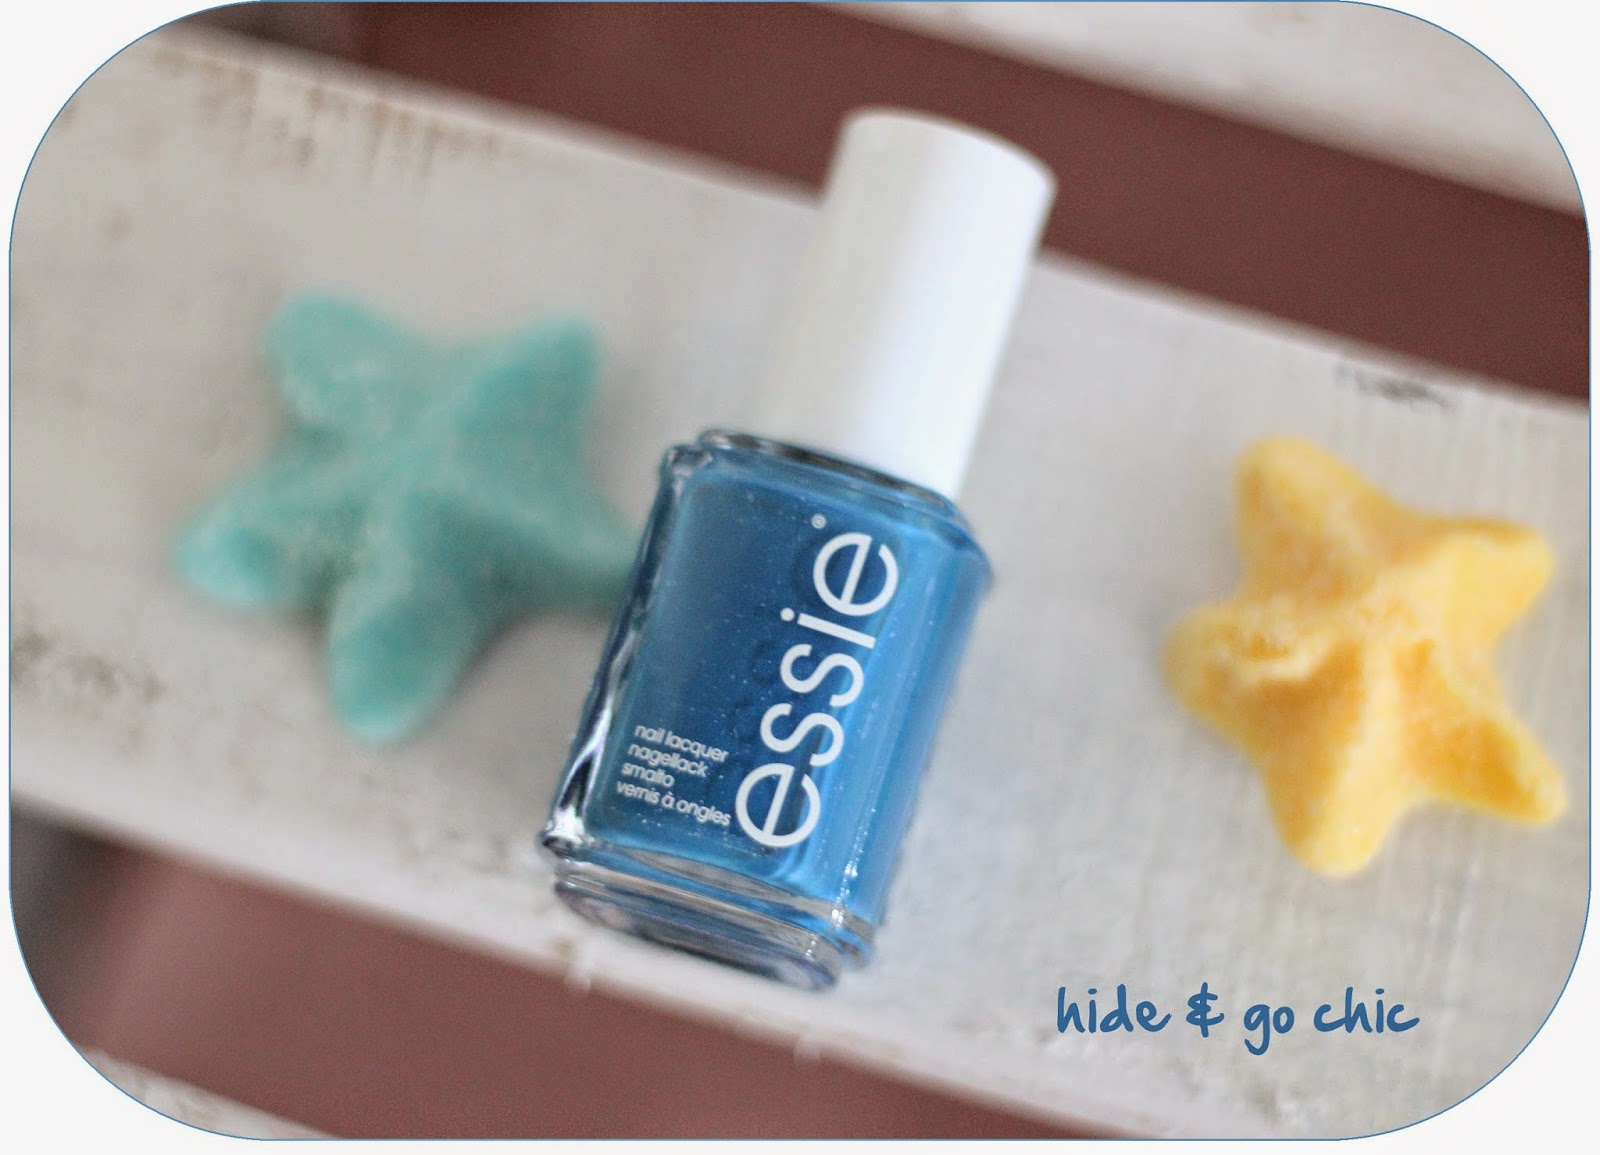 photo-essie-nails-uñas-coleccion-primavera_2014-hide&gochic